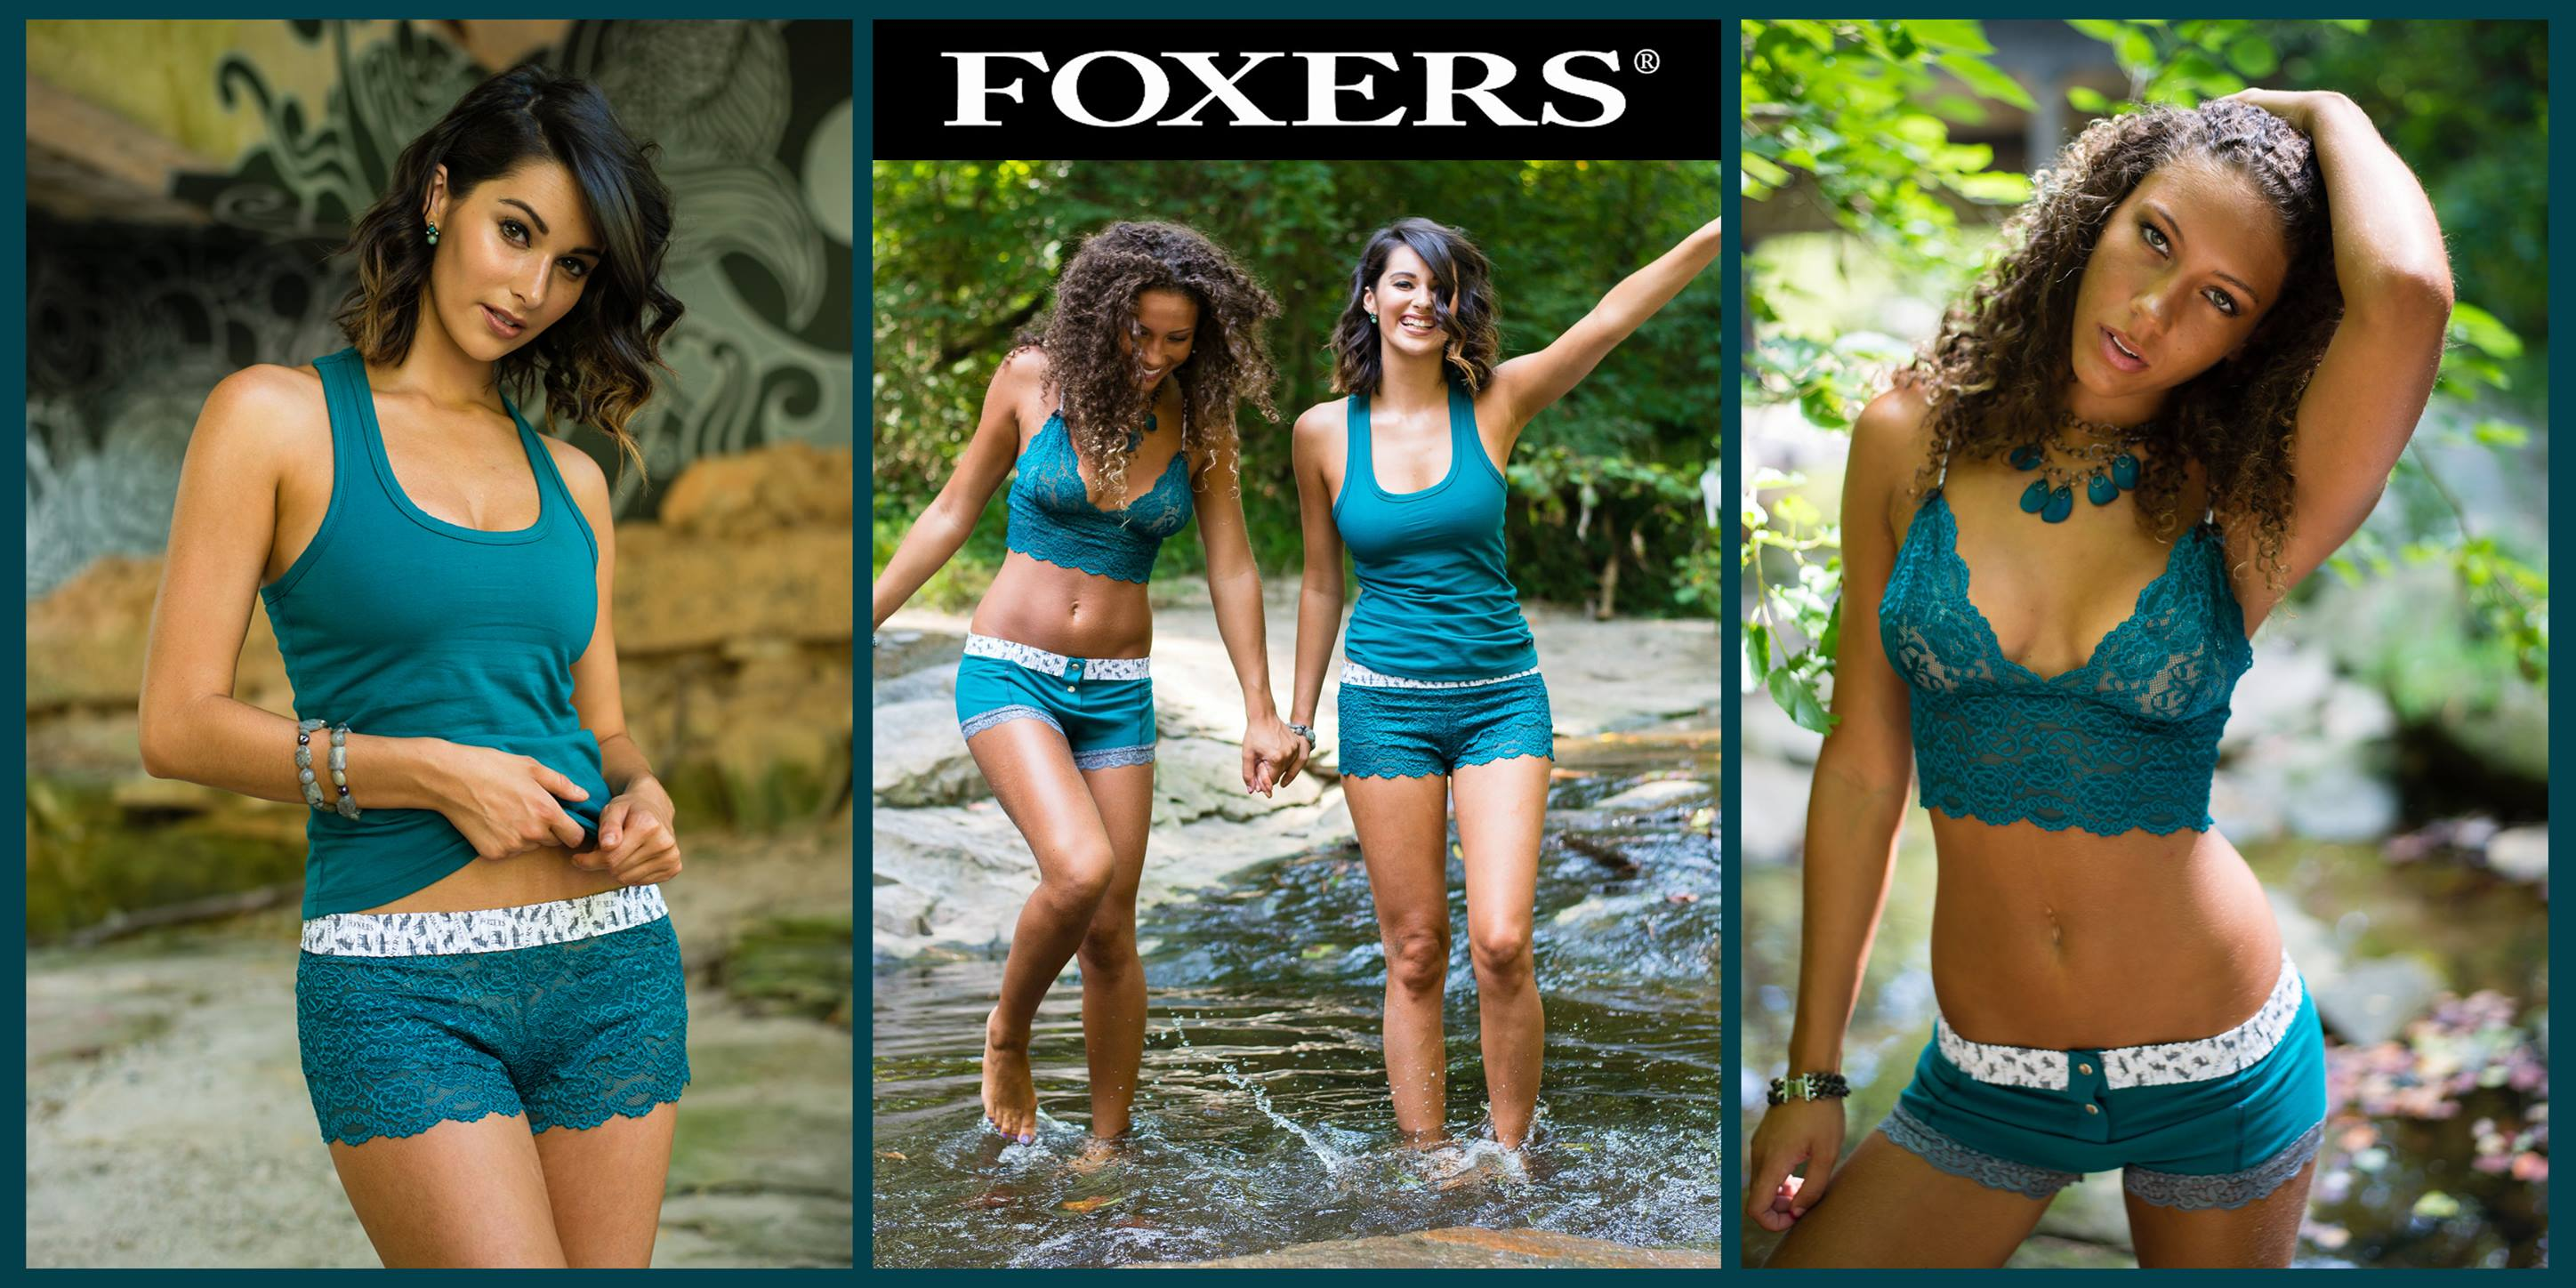 About FOXERS Homepage